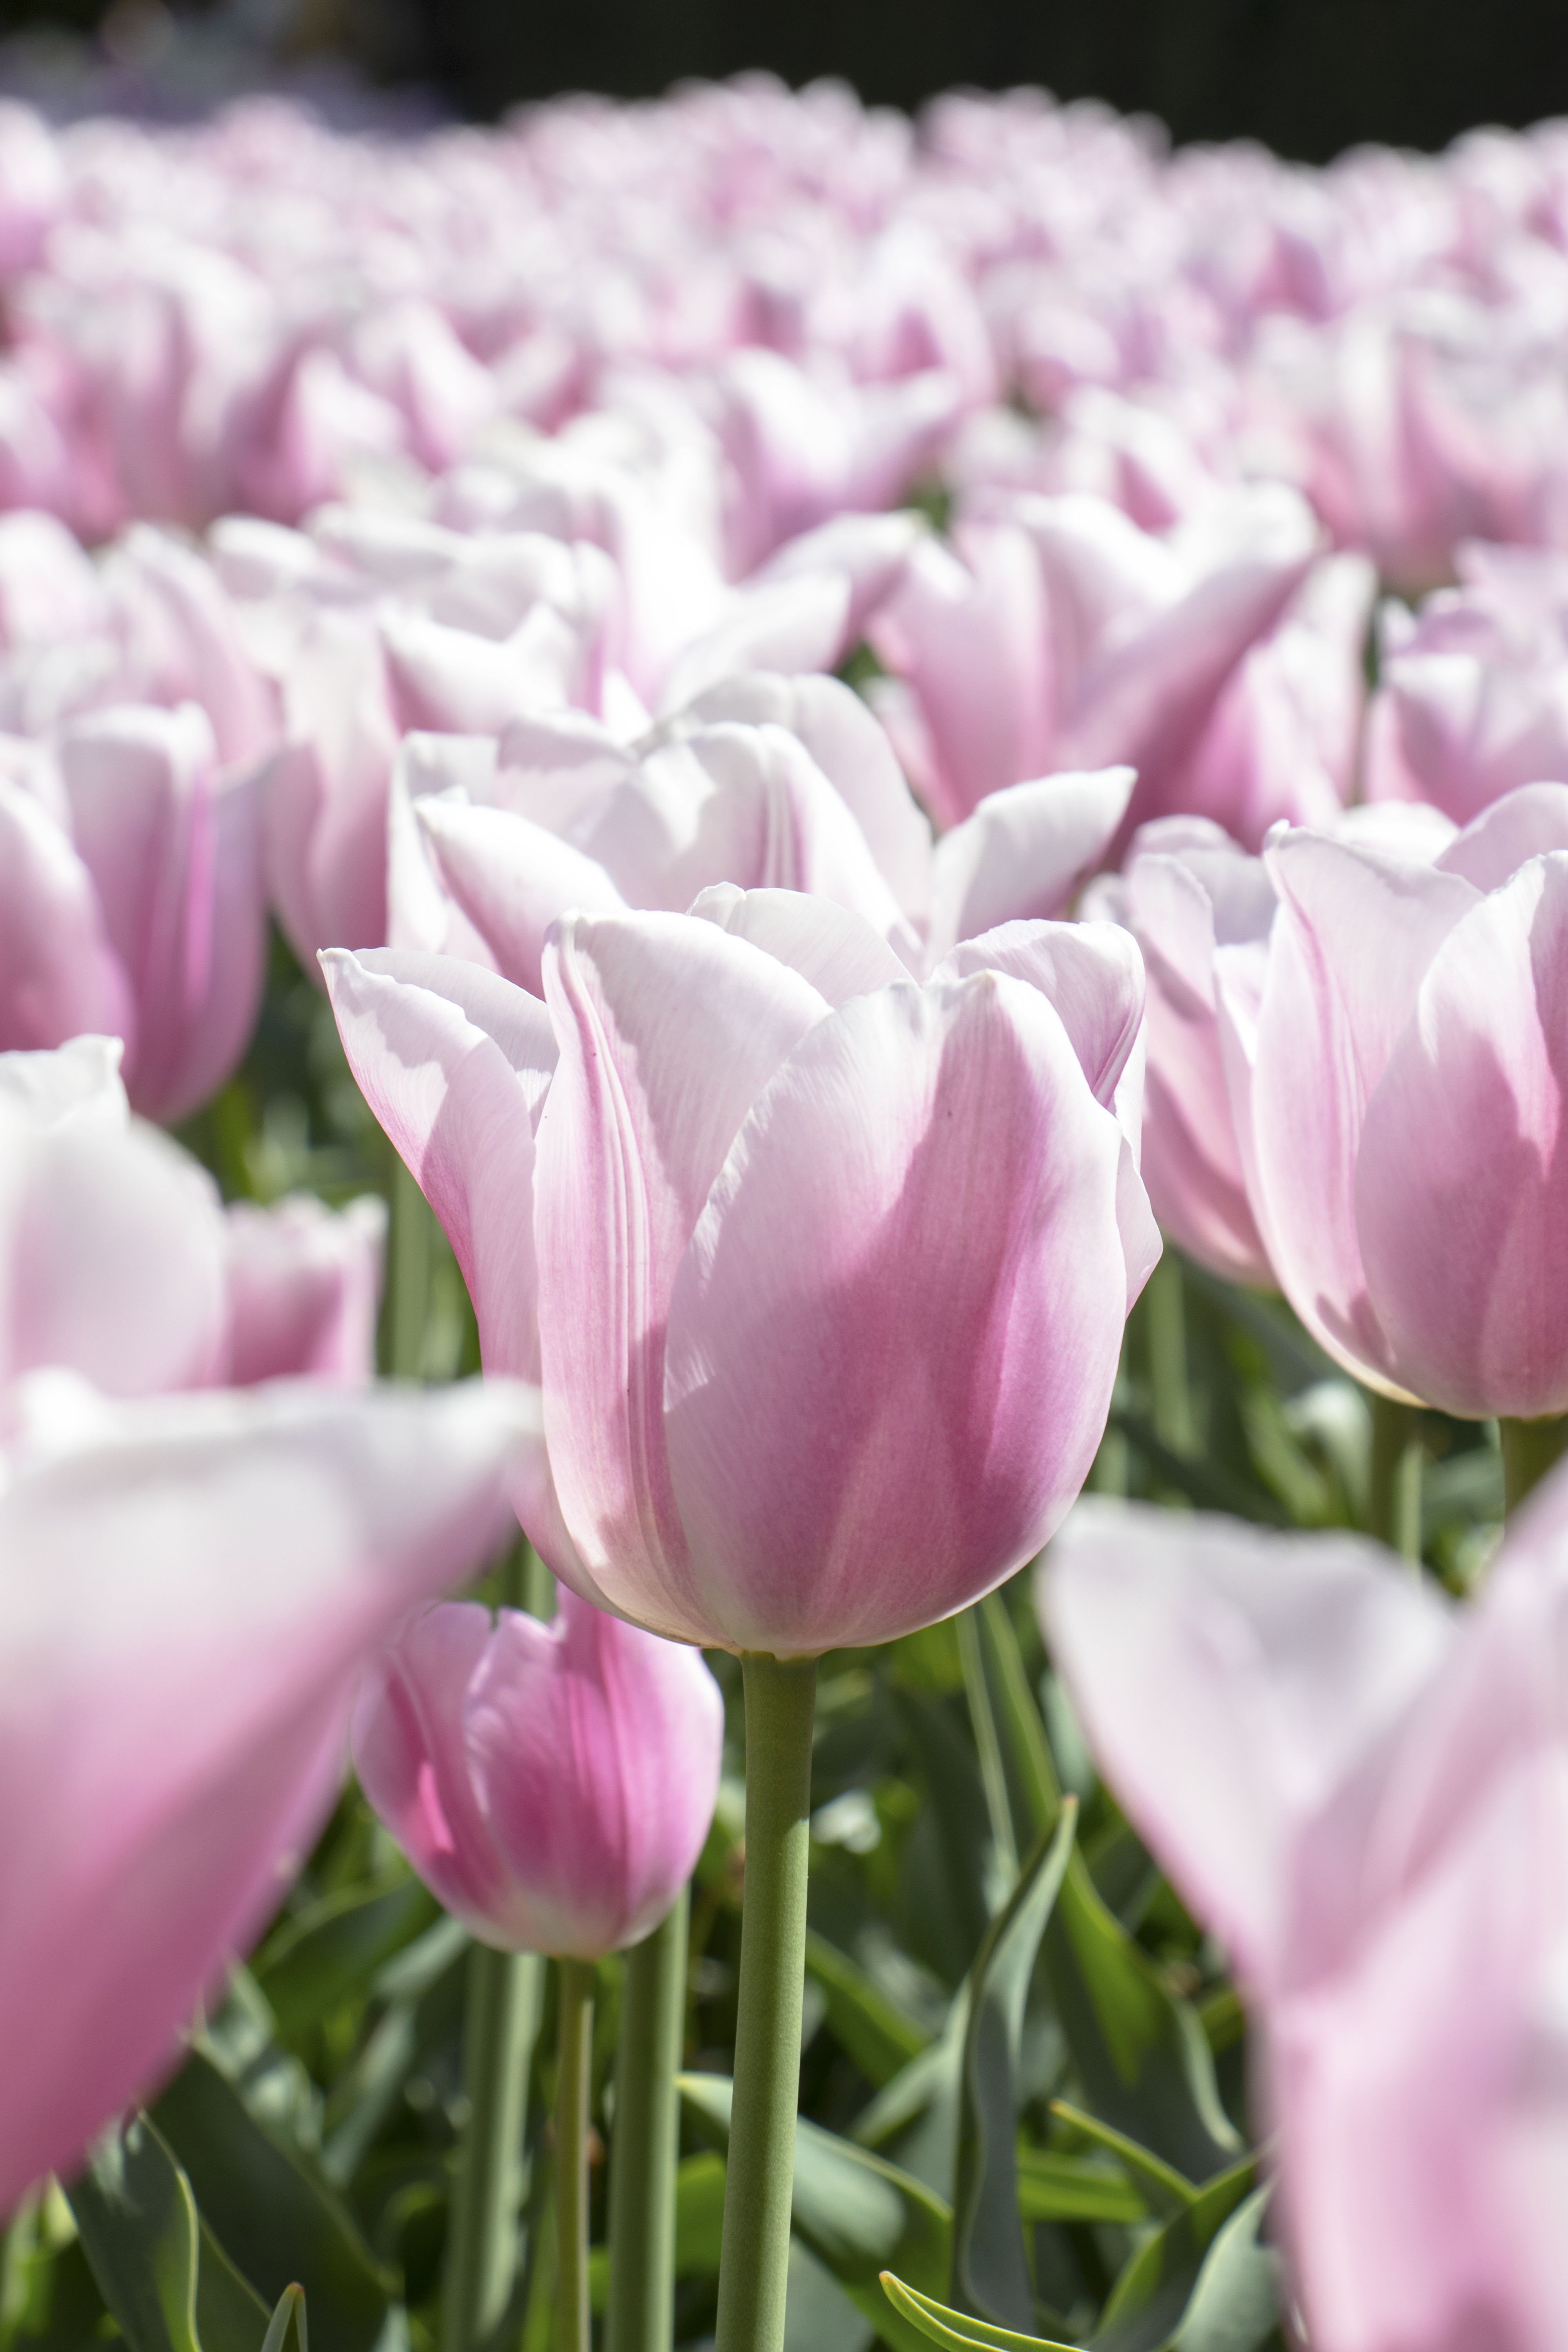 Pink and white tulips at Keukenhof, Lisse, Netherlands